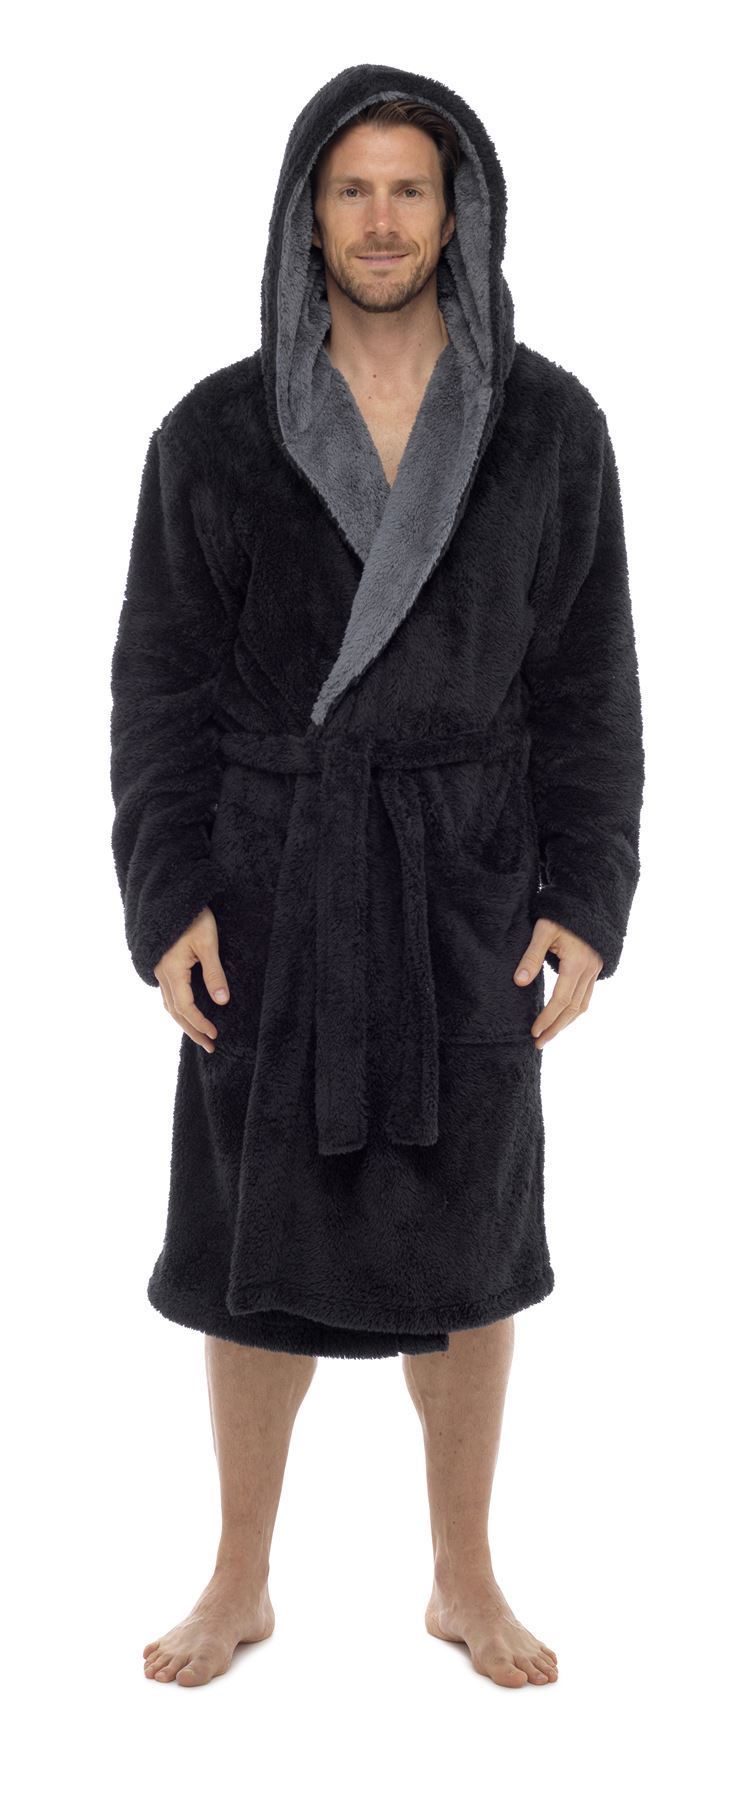 Mens Snuggle Fleece Robe Luxury Super Soft Hooded Dressing Gown